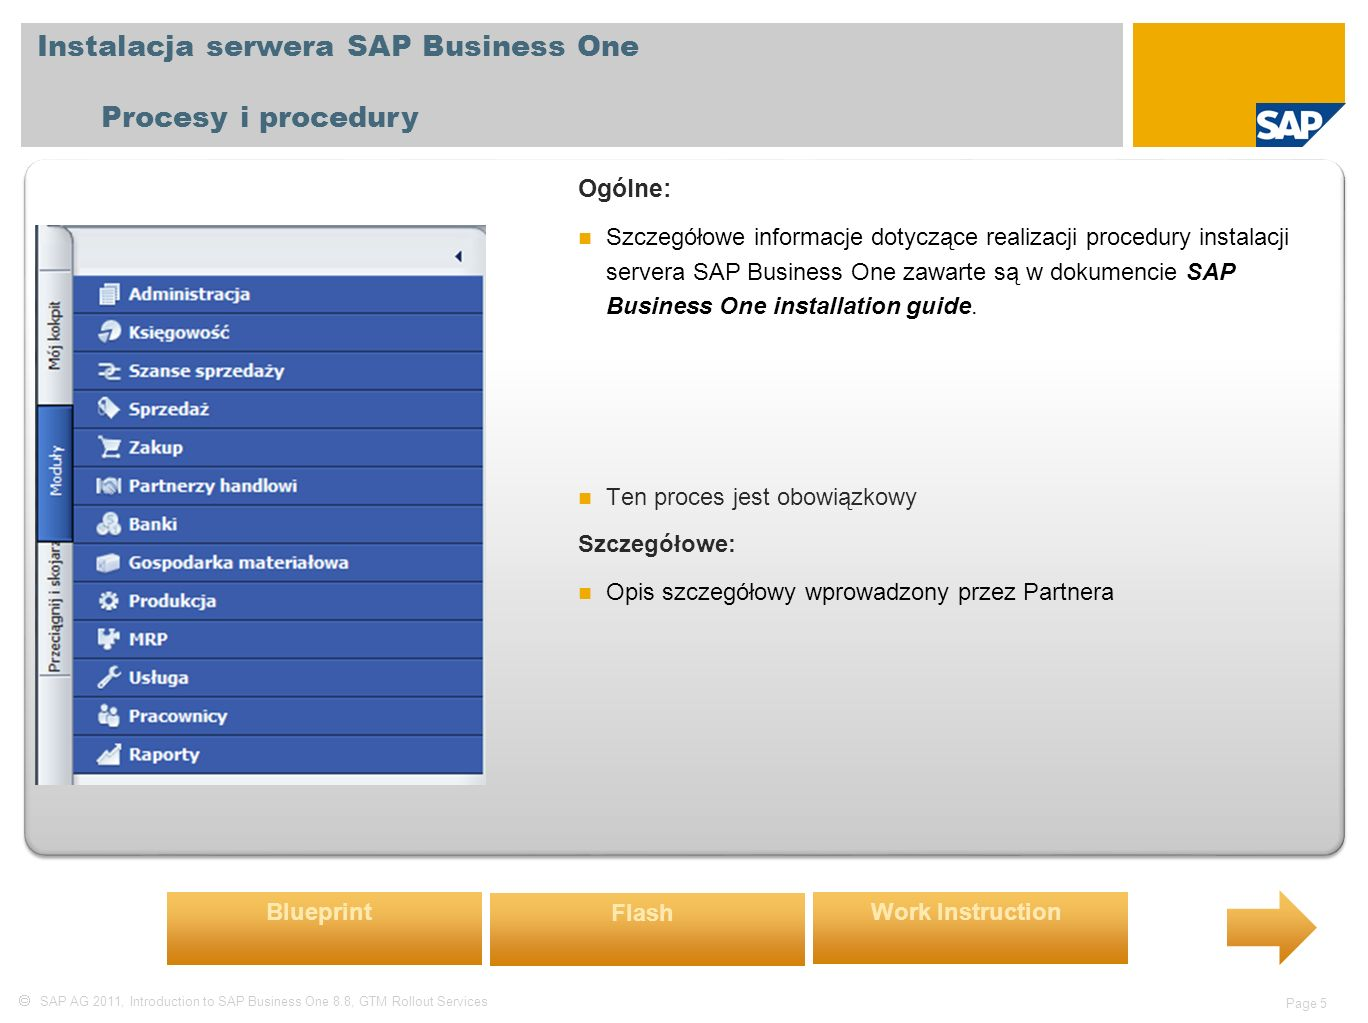  SAP AG 2011, Introduction to SAP Business One 8.8, GTM Rollout Services Page 5 Instalacja serwera SAP Business One Procesy i procedury Ogólne: Szcze